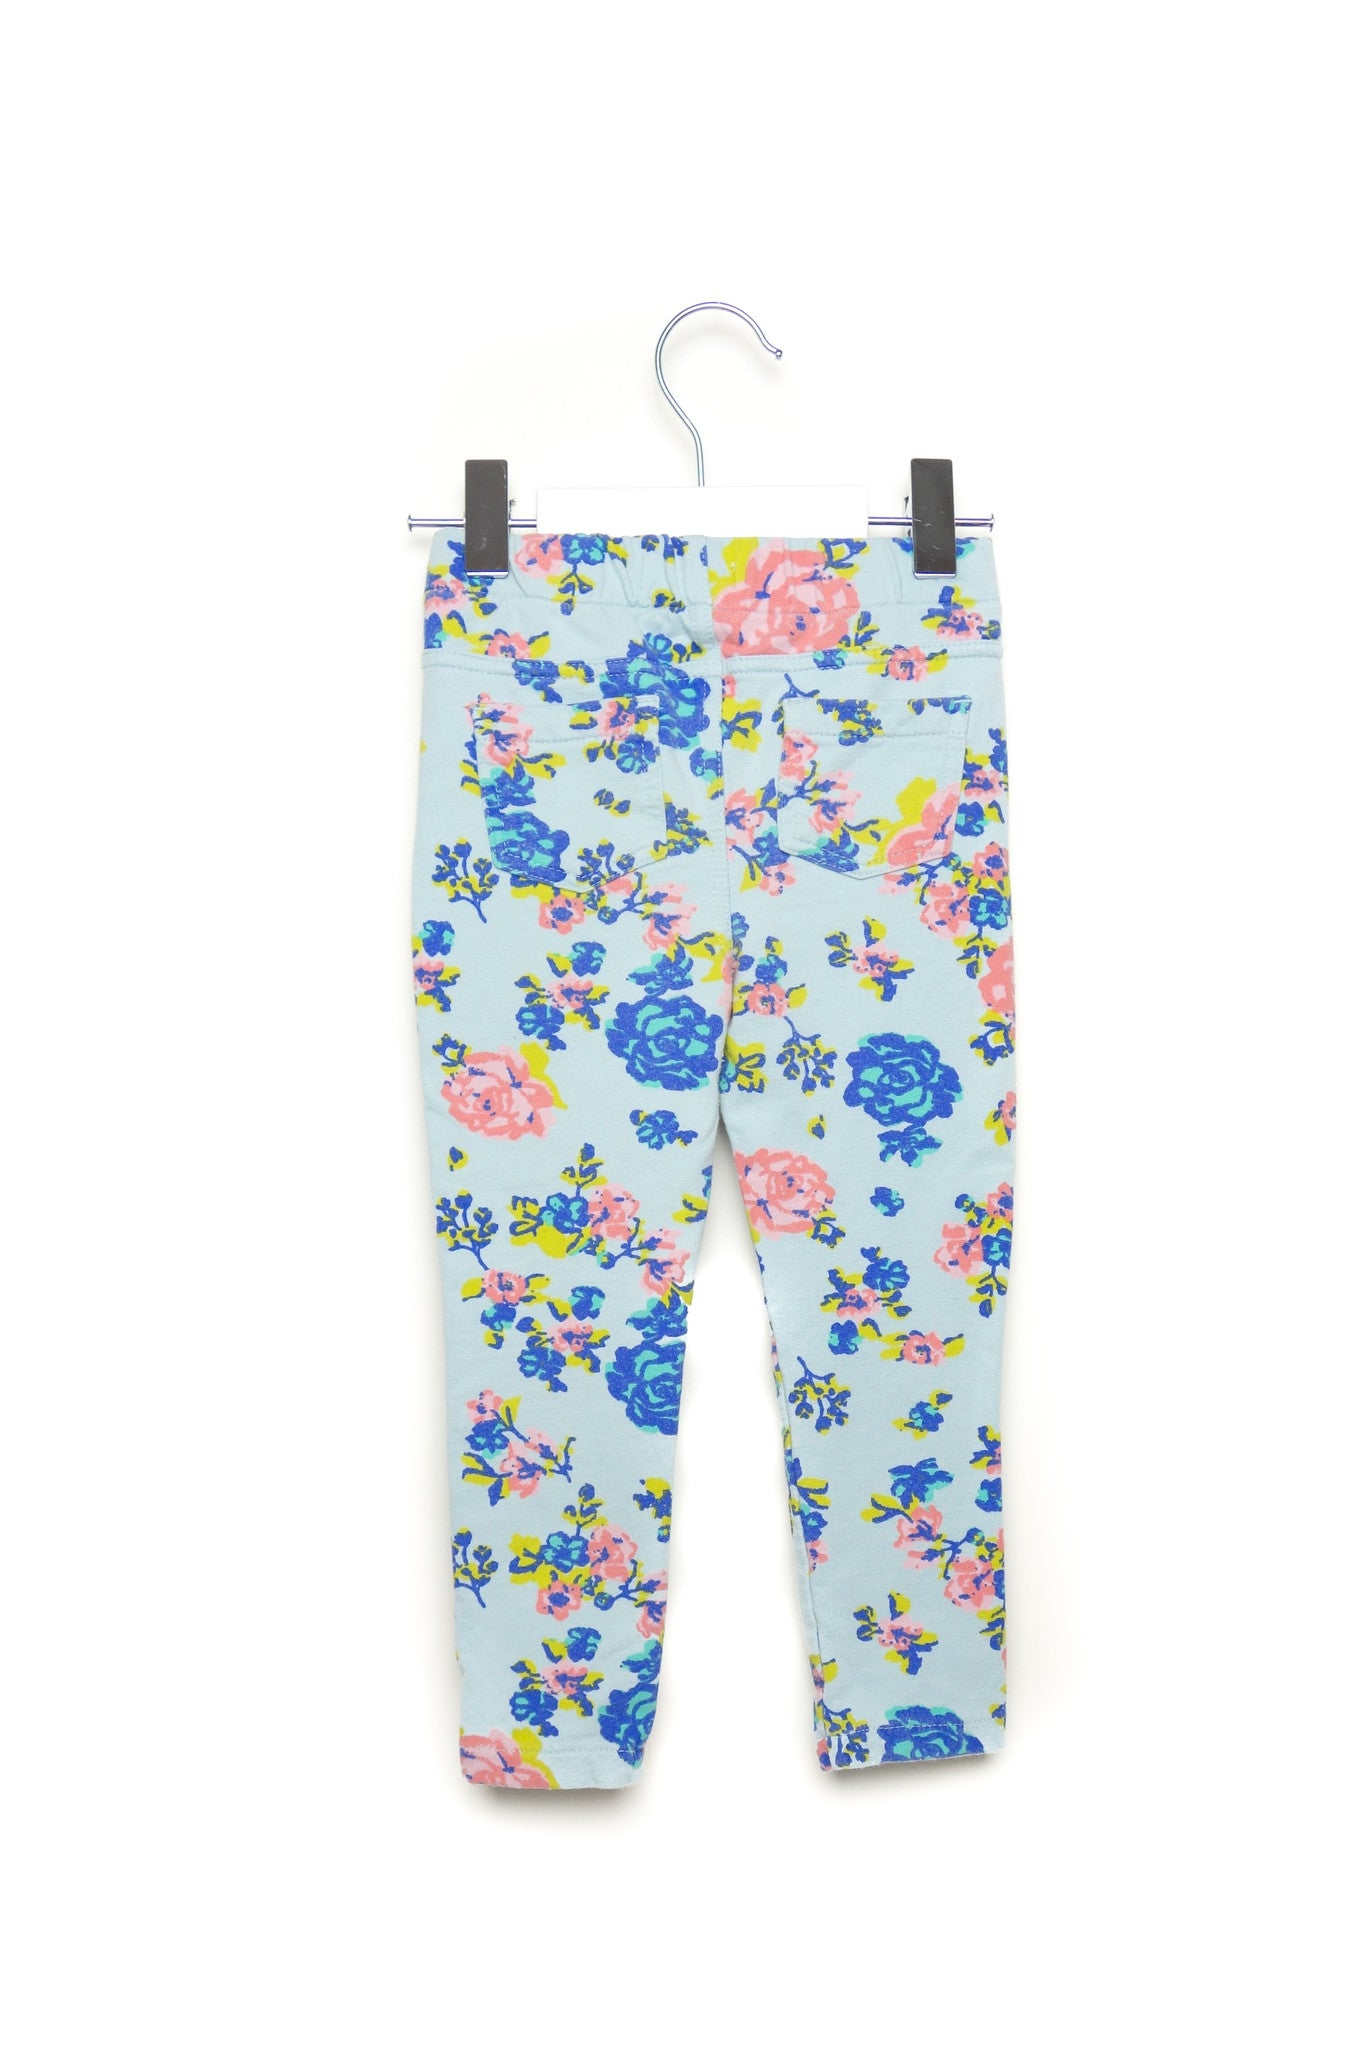 10001531~Pants 24M, Tucker & Tate at Retykle - Online Baby & Kids Clothing Up to 90% Off